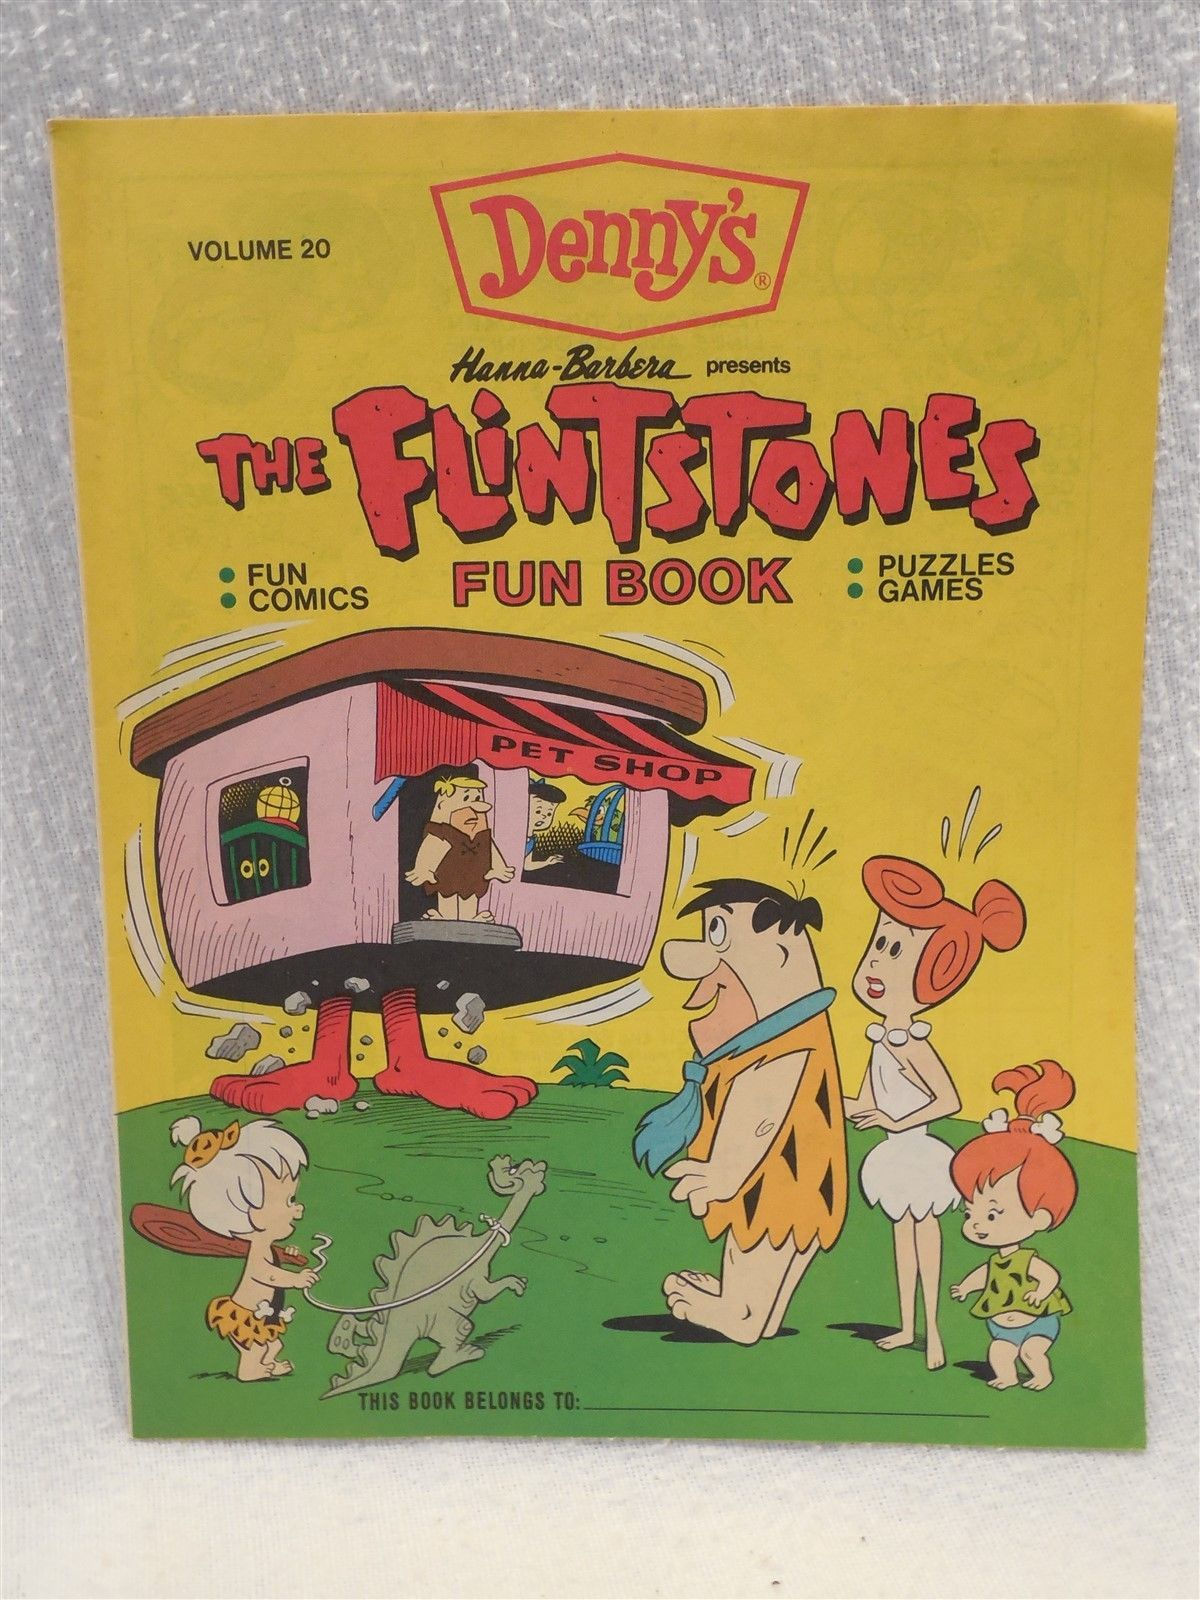 Flintstones 1990 Denny's Unused Fun Book - Comics, Puzzles, Games - Volume 20